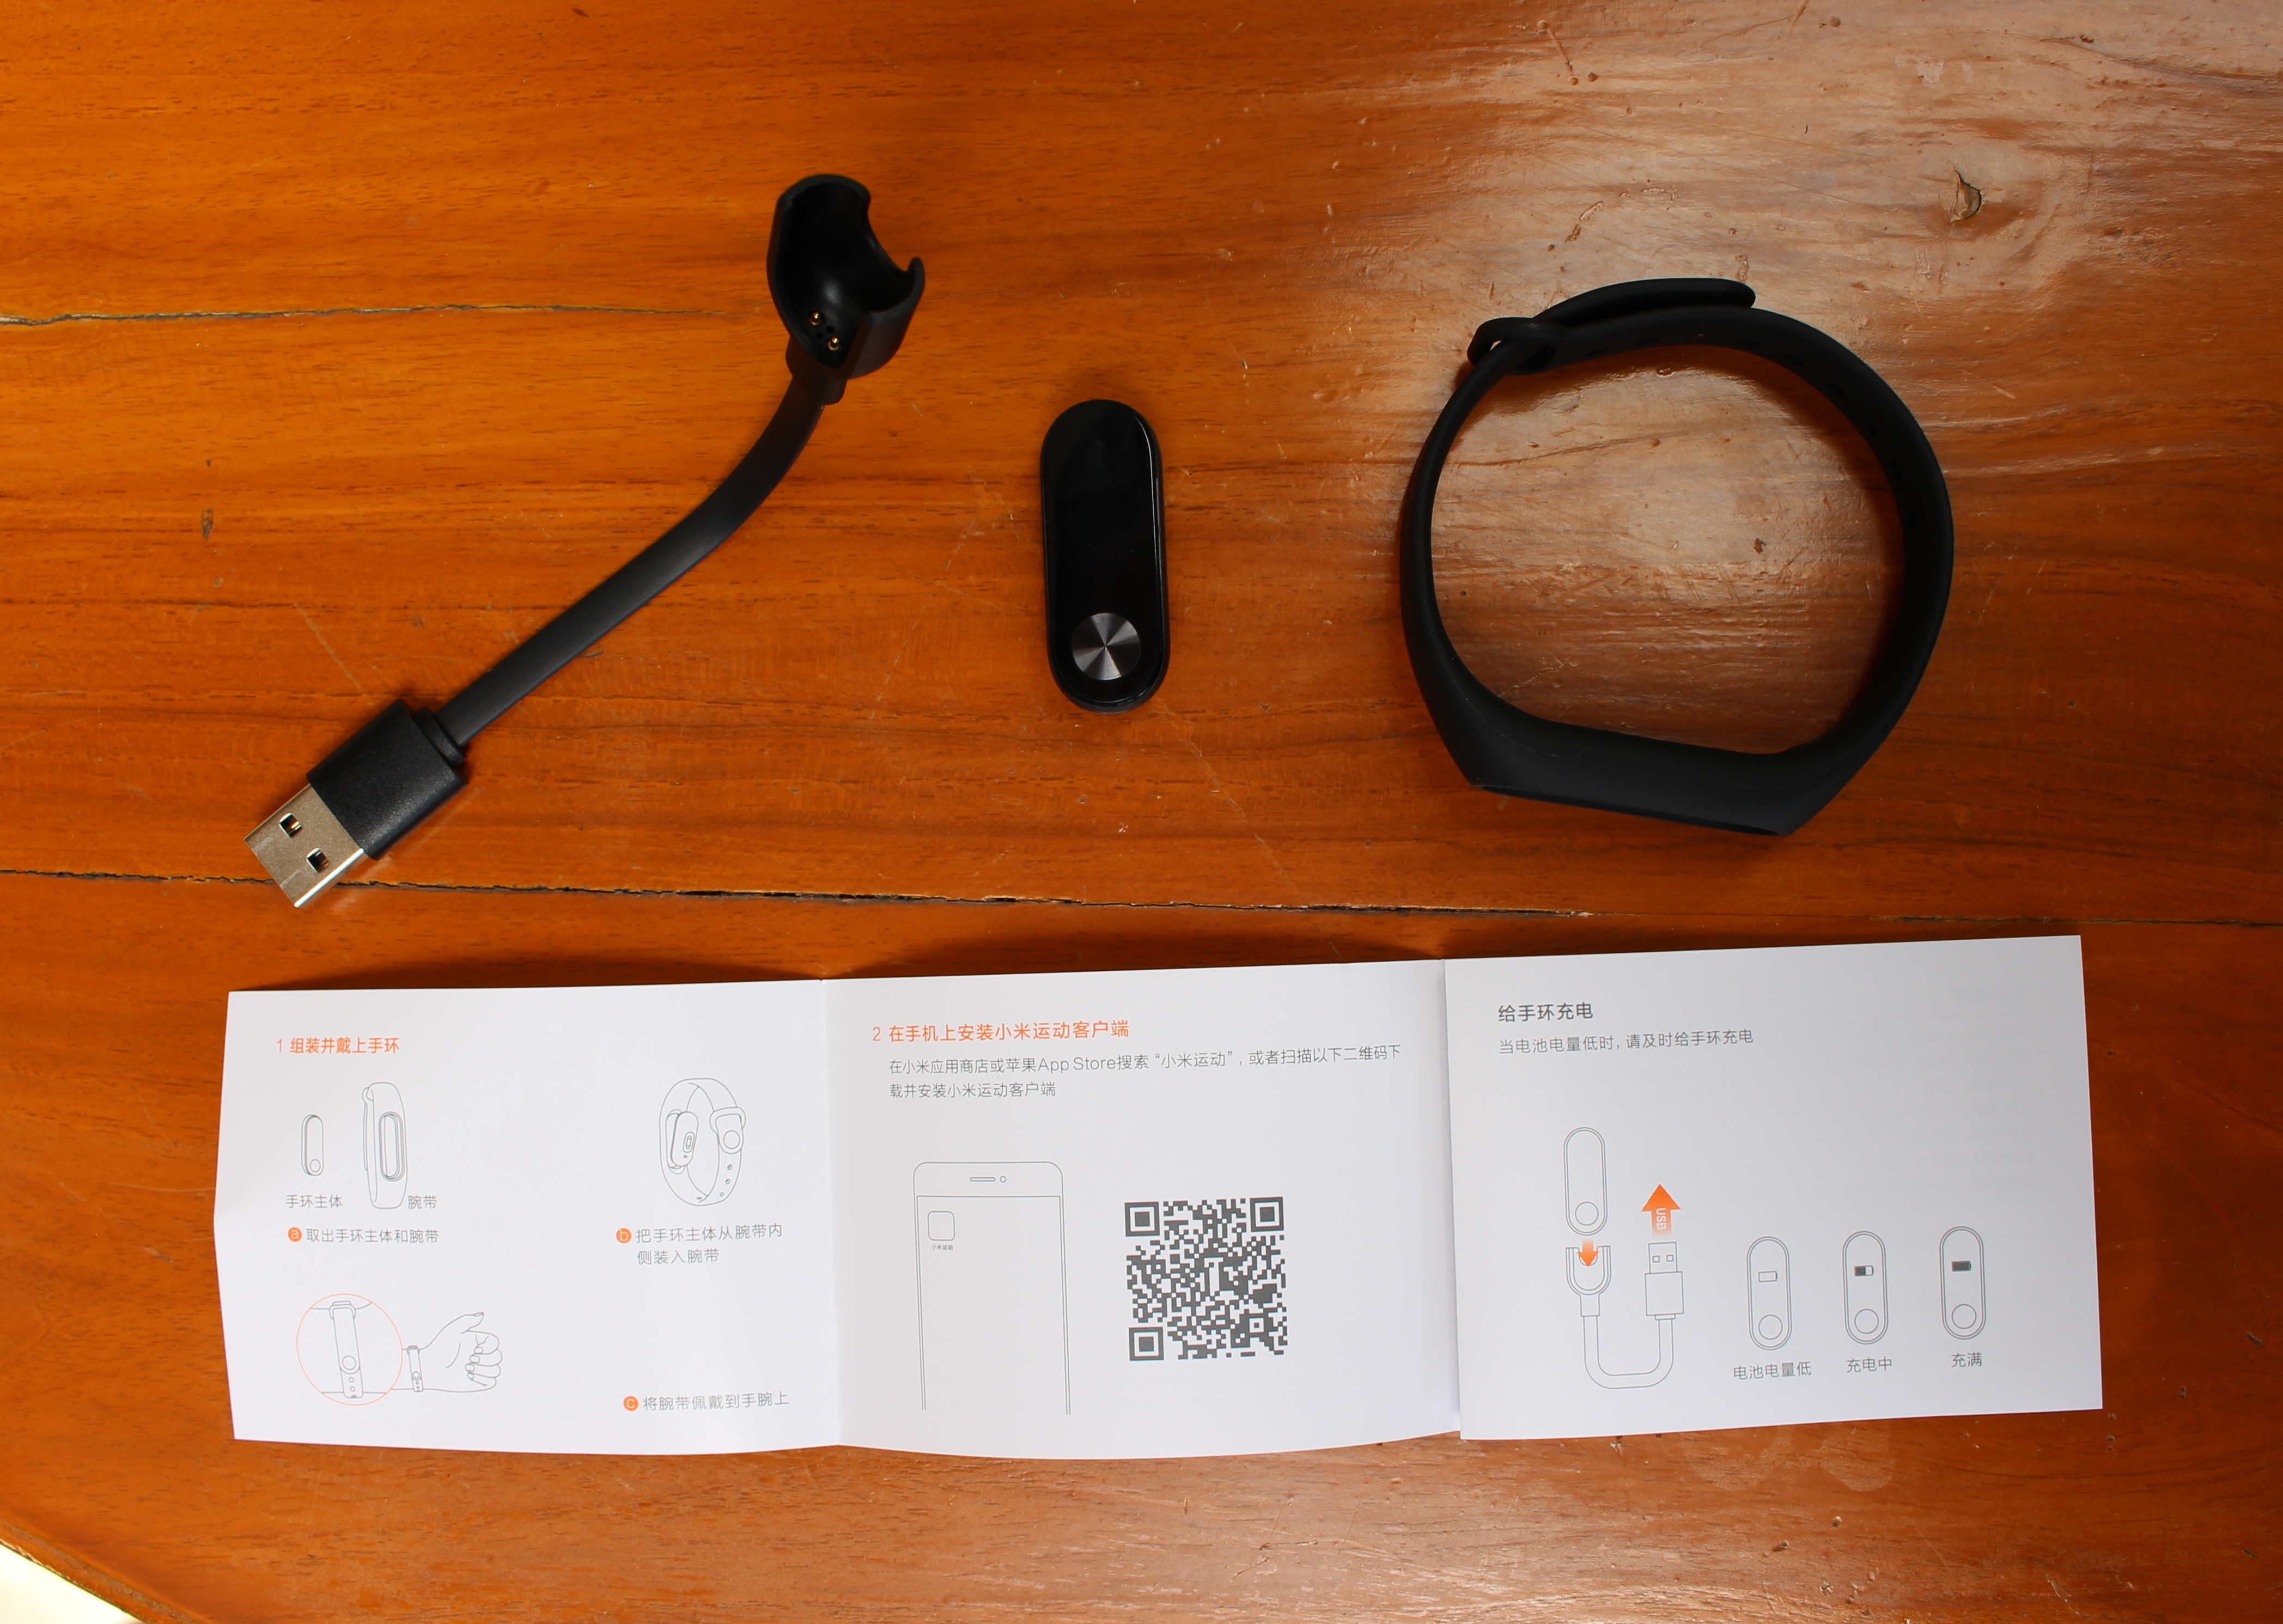 Xiaomi Mi Band 2 Fitness Tracker Unboxing